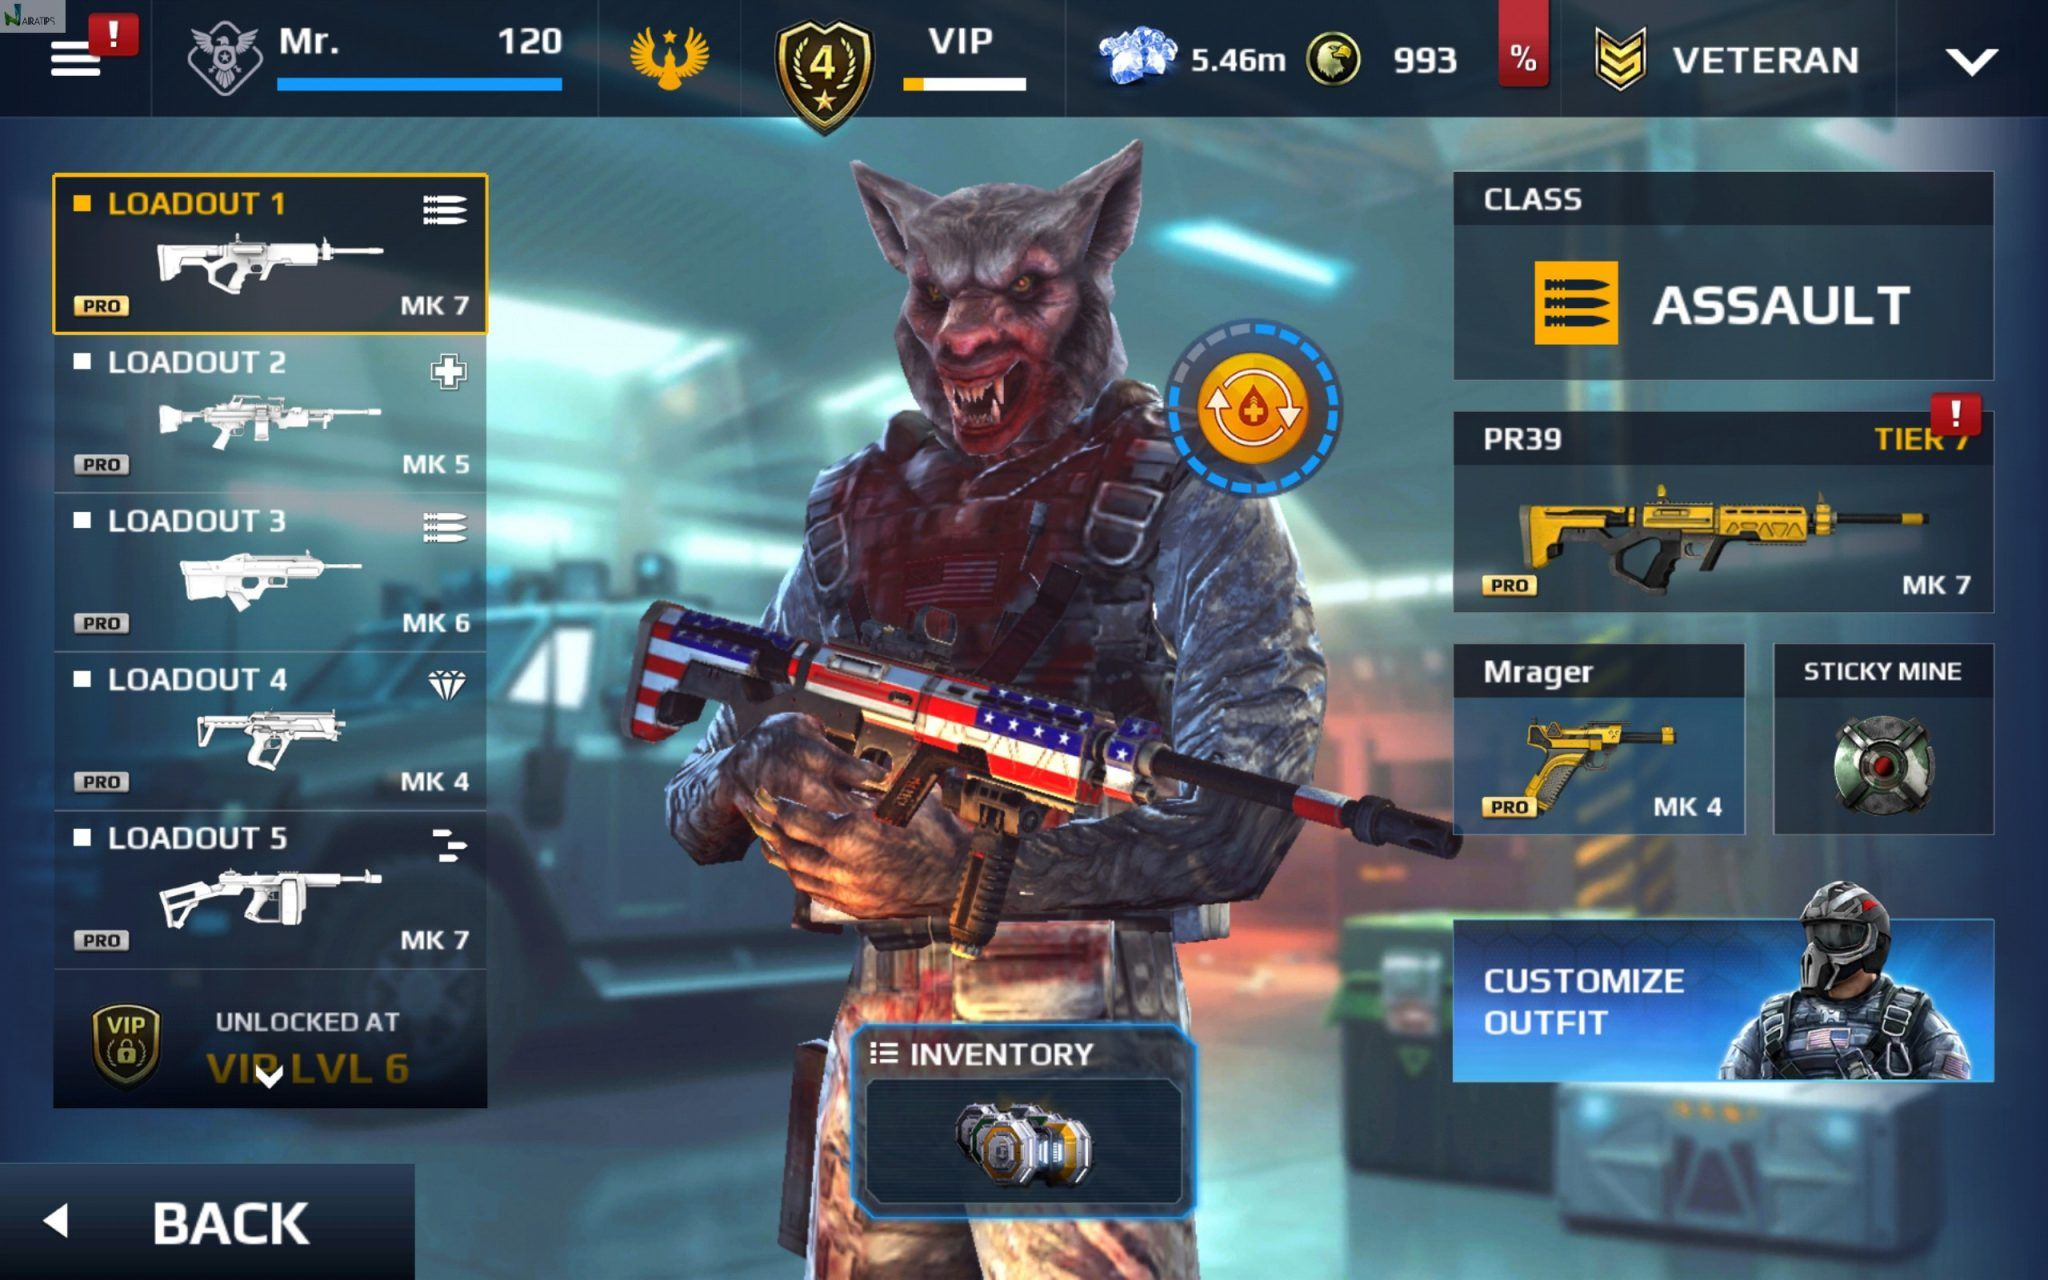 Modern Combat 5 Hack Free Credits And Vip Modern Combat 5 Cheats Android Ios Modern Combat 5 Hack And Cheats Modern Combat 5 Combat Cheating Tool Hacks